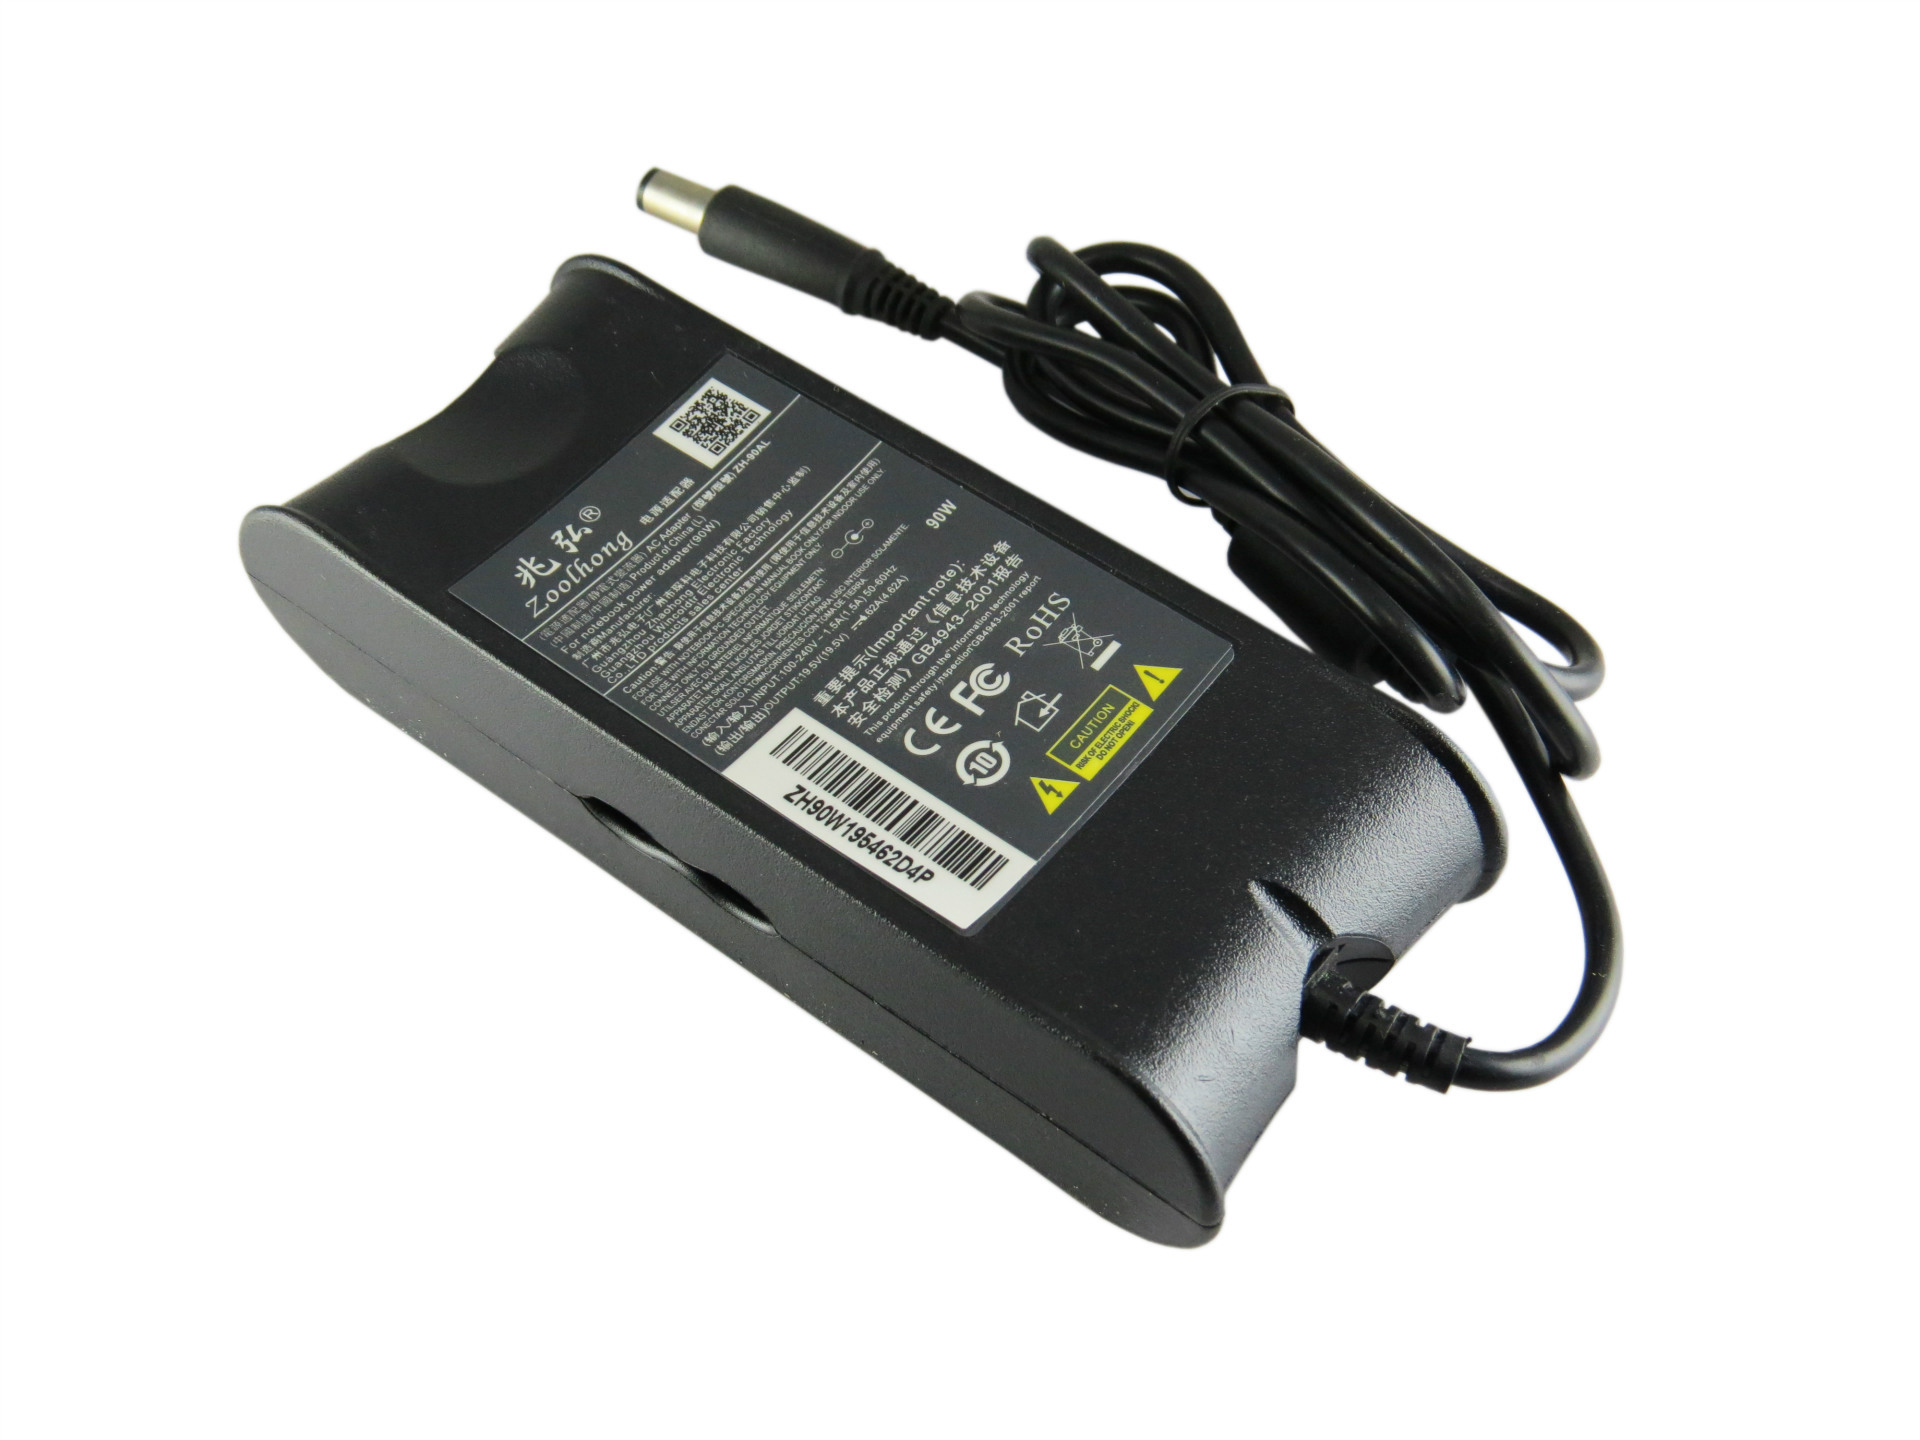 Lot 90W Charger Ac Adapter Power Cable For Dell PA-10 19.5V 7.4*5.0mm Connector